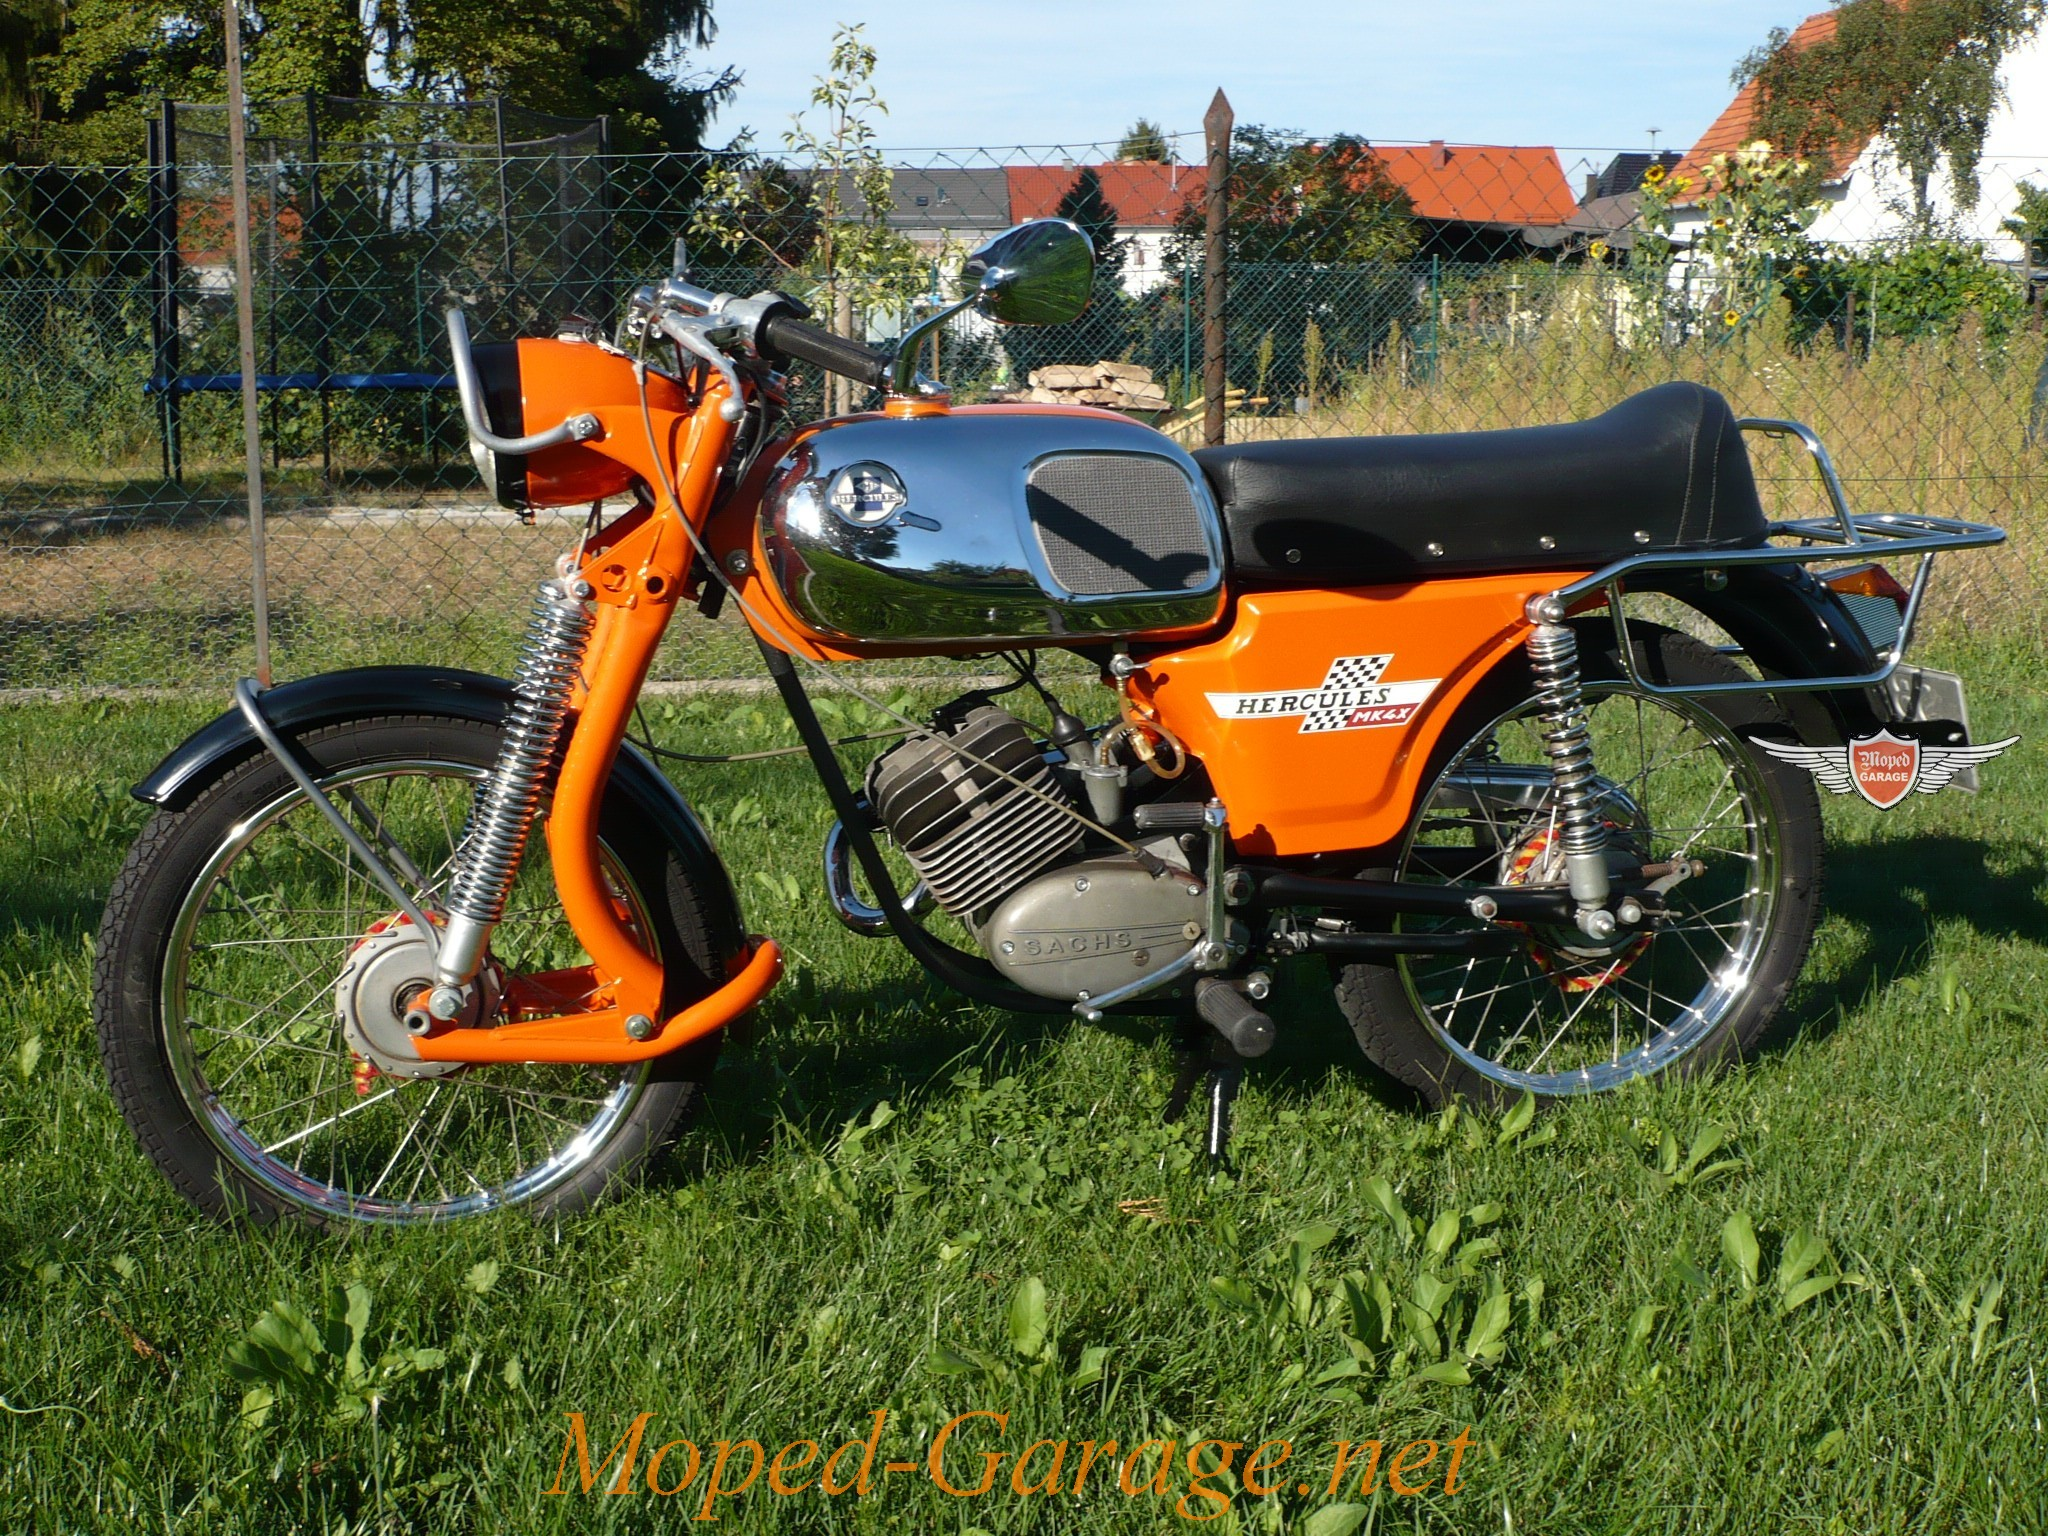 moped hercules k 50 sx moped teile kaufen. Black Bedroom Furniture Sets. Home Design Ideas